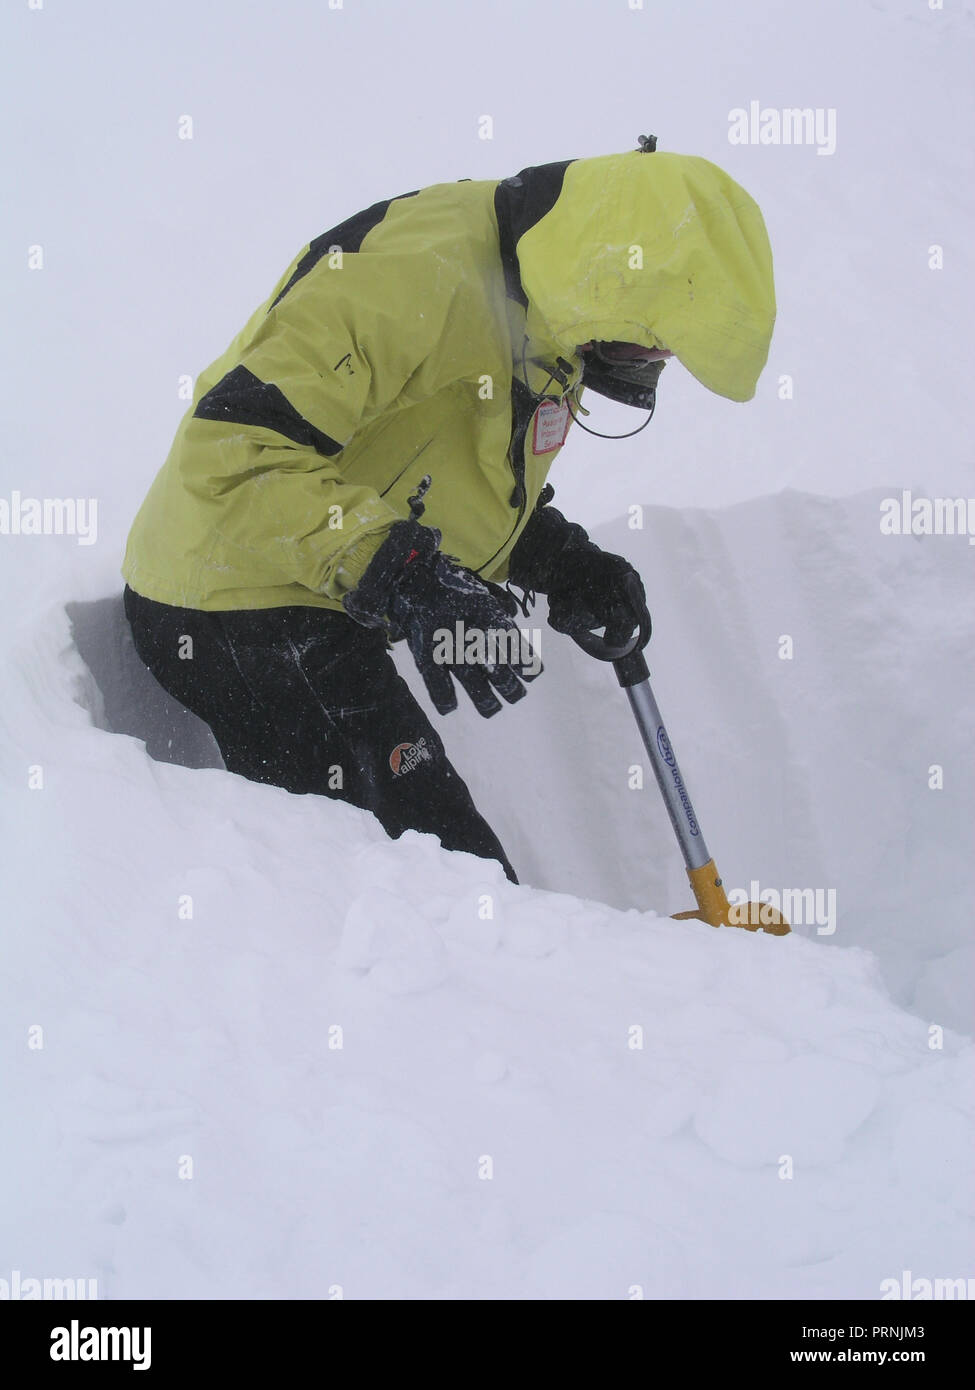 A member of the Scottish Avalanche Information Service carrying out observations on the snow pack stability in the Cairngorm National Park - Stock Image